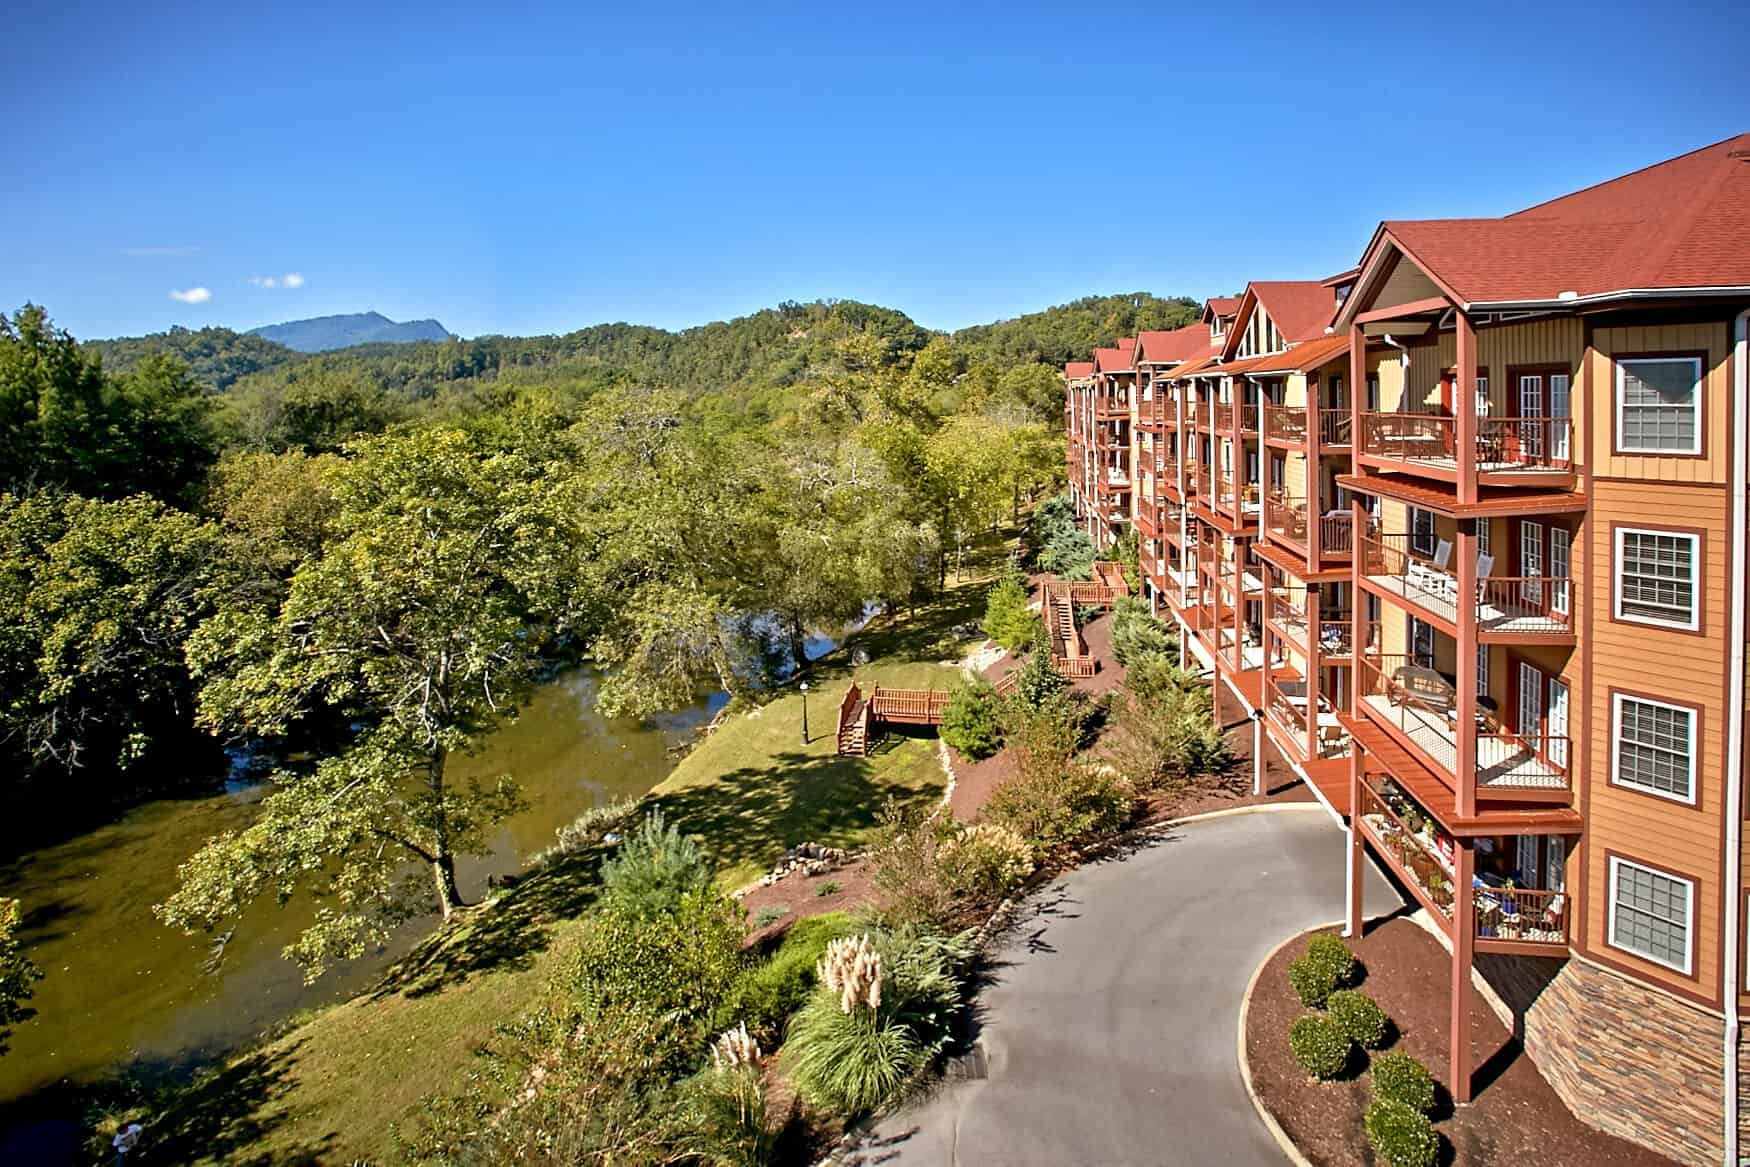 Smoky Mountain Condos on the River at Appleview River Resort